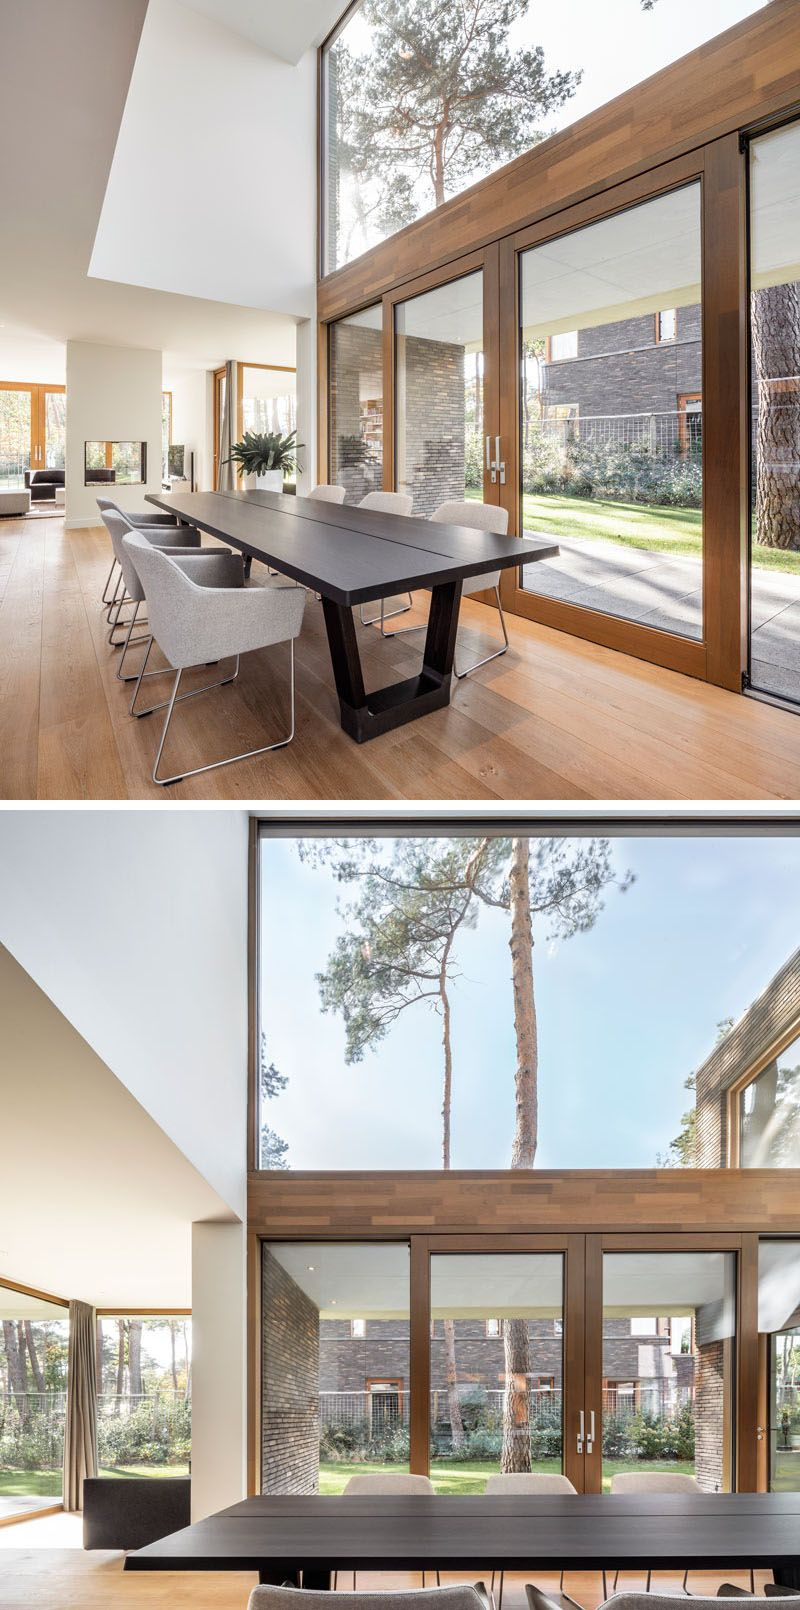 This Modern House Has A Double Height Ceiling Above Dining Table Large Windows For Plenty Of Natural Light And Wood Modern Windows Large Windows House Design